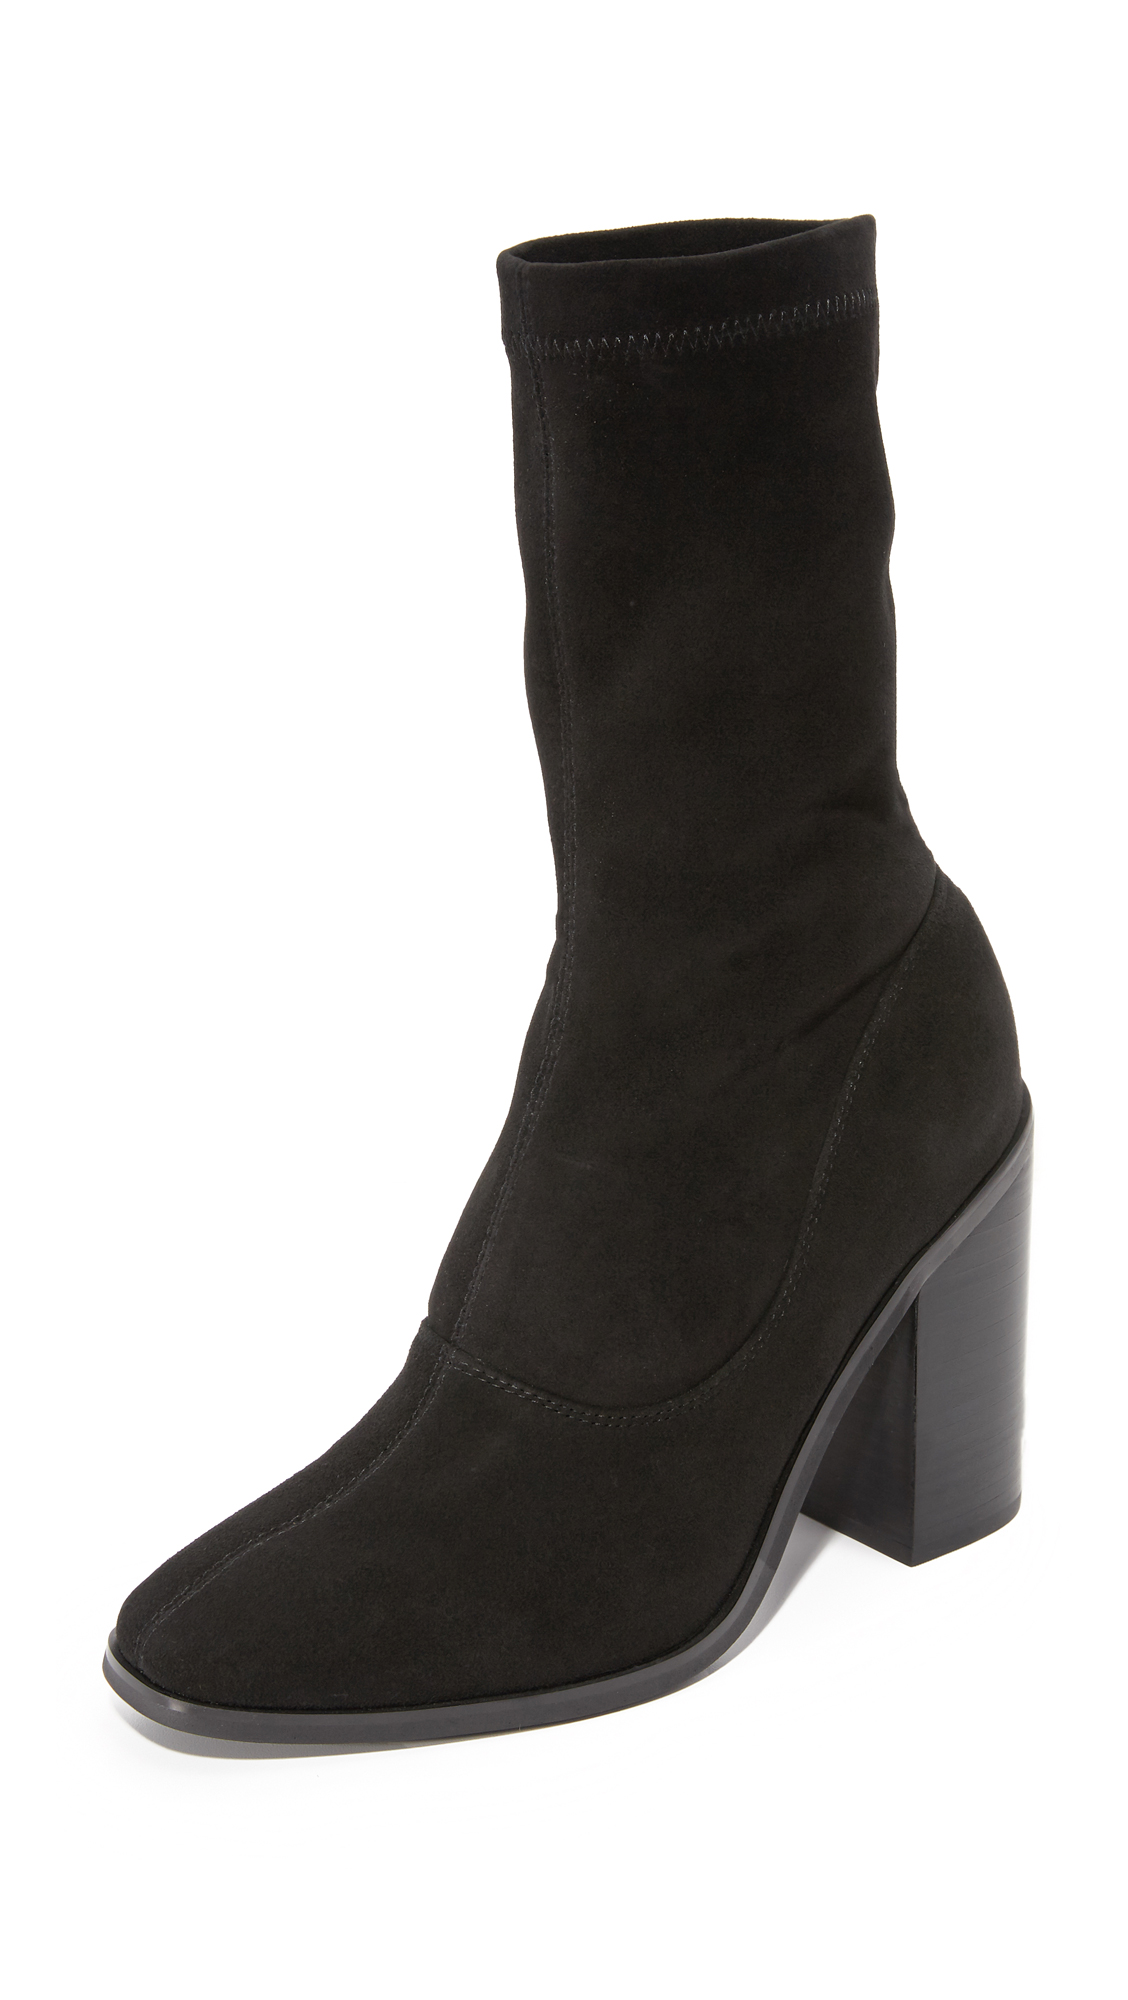 Sol Sana Chloe Stretch Booties - Black